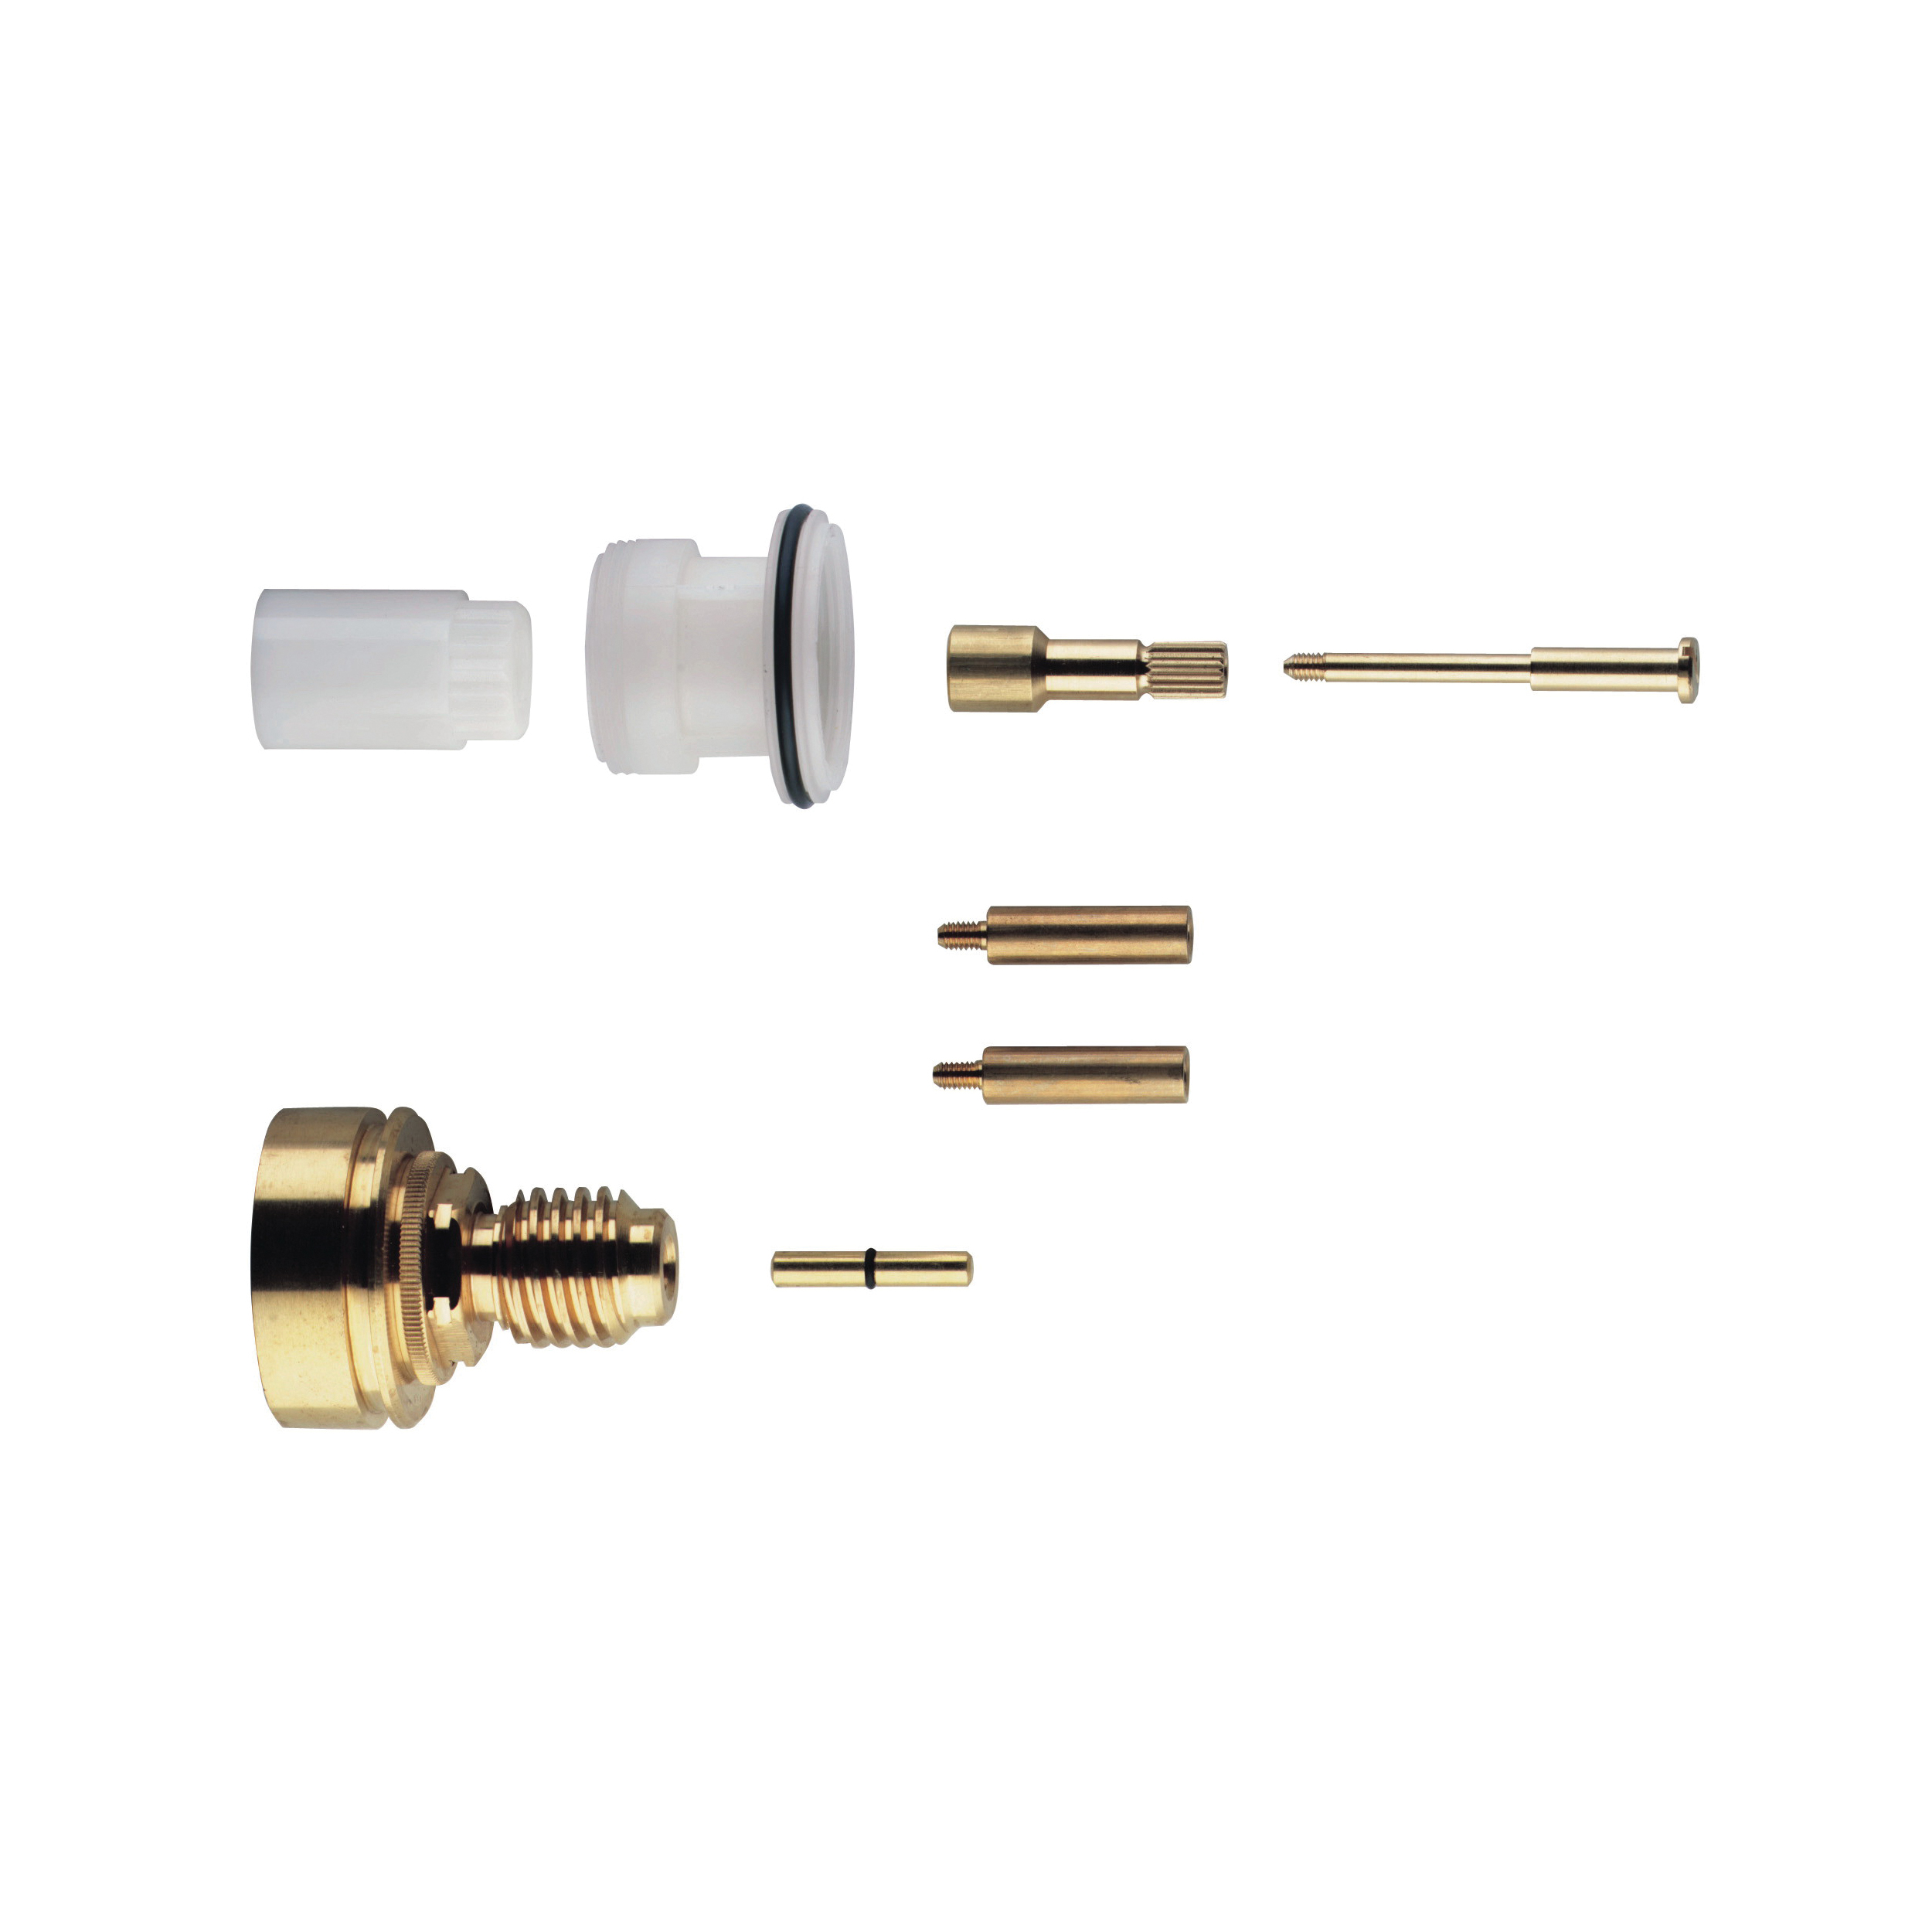 GROHE 47358000 Extension Kit, 1-1/8 in, For Use With: Taron 19658/19660 Mixer Shower, Sentosa 19609/19667 Shower Trim Set, Europlus 19682/19683 Thermostatic Shower Mixer, Grohtherm 3000 19663 Shower Mixer, 19664 Faceplate and Fixing Set